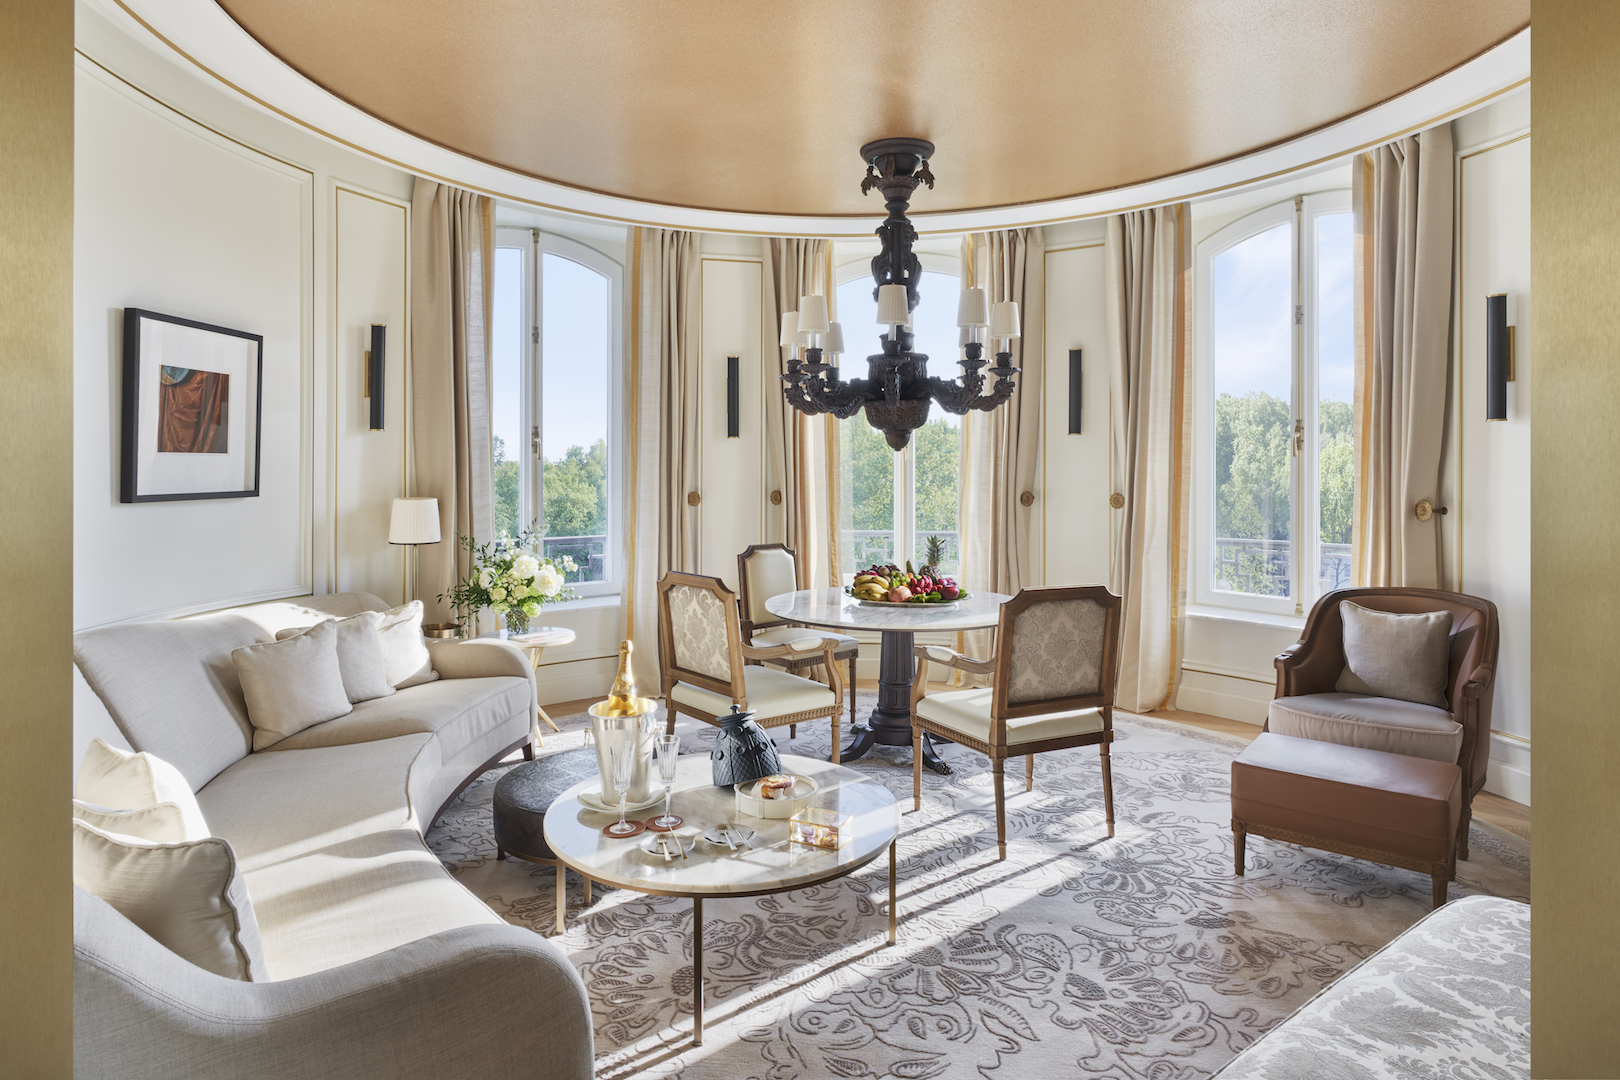 Mandarin Oriental Ritz, Madrid now officially open - Turret Suite